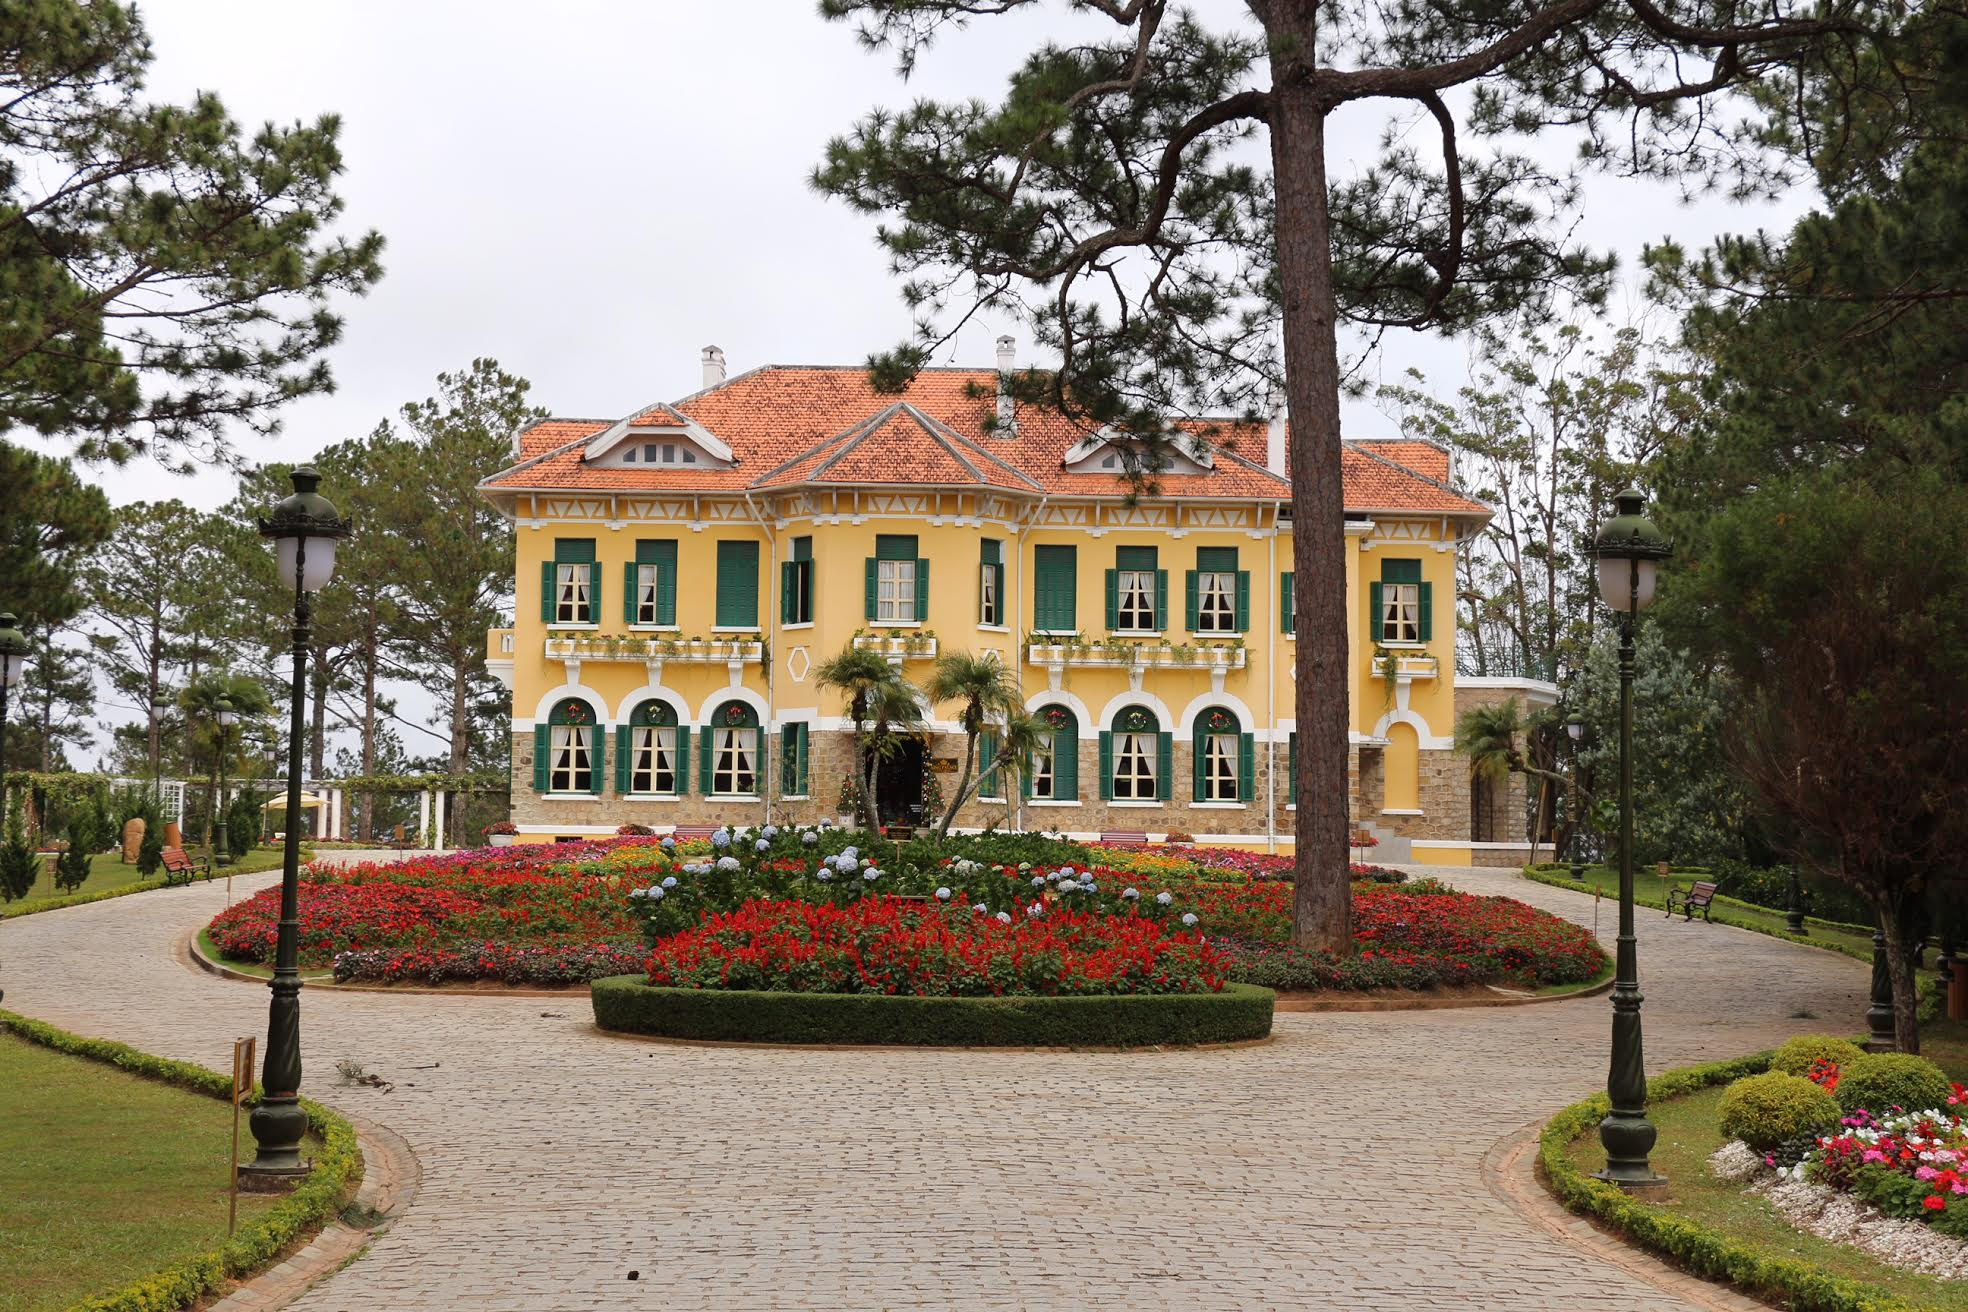 The King's Palace was built by a French millionaire and bought from him by the King of Vietnam. It used to be the Kong's residence until he and his family were exiled to France.